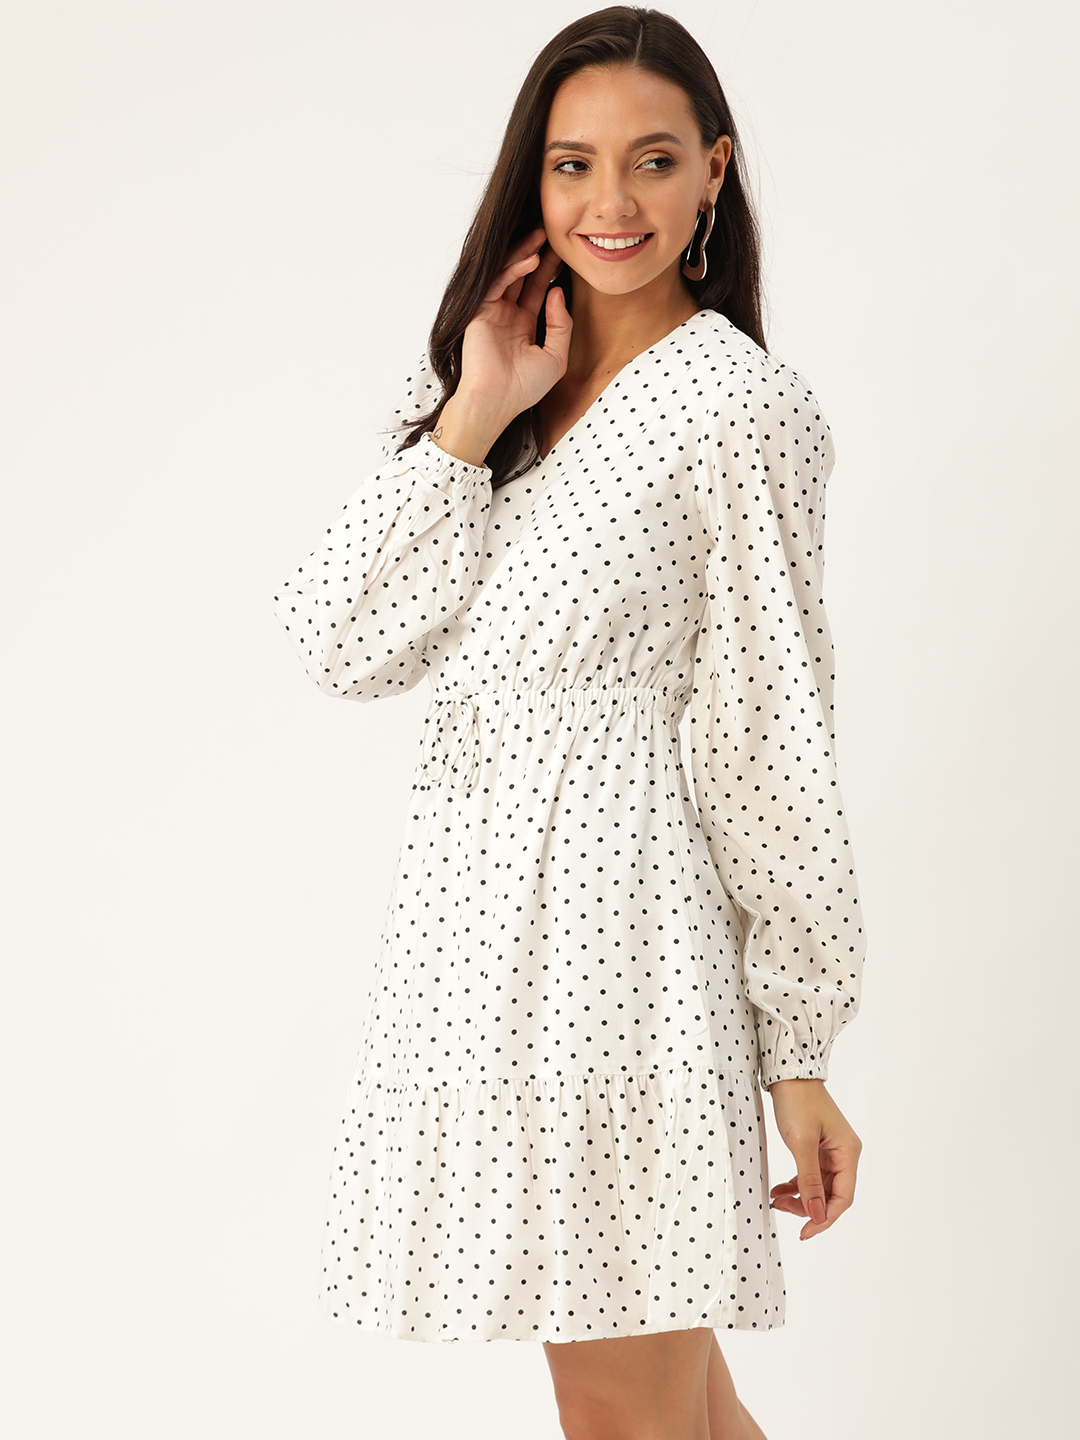 Dresses-Simply Elegant Polka Dot Dress4